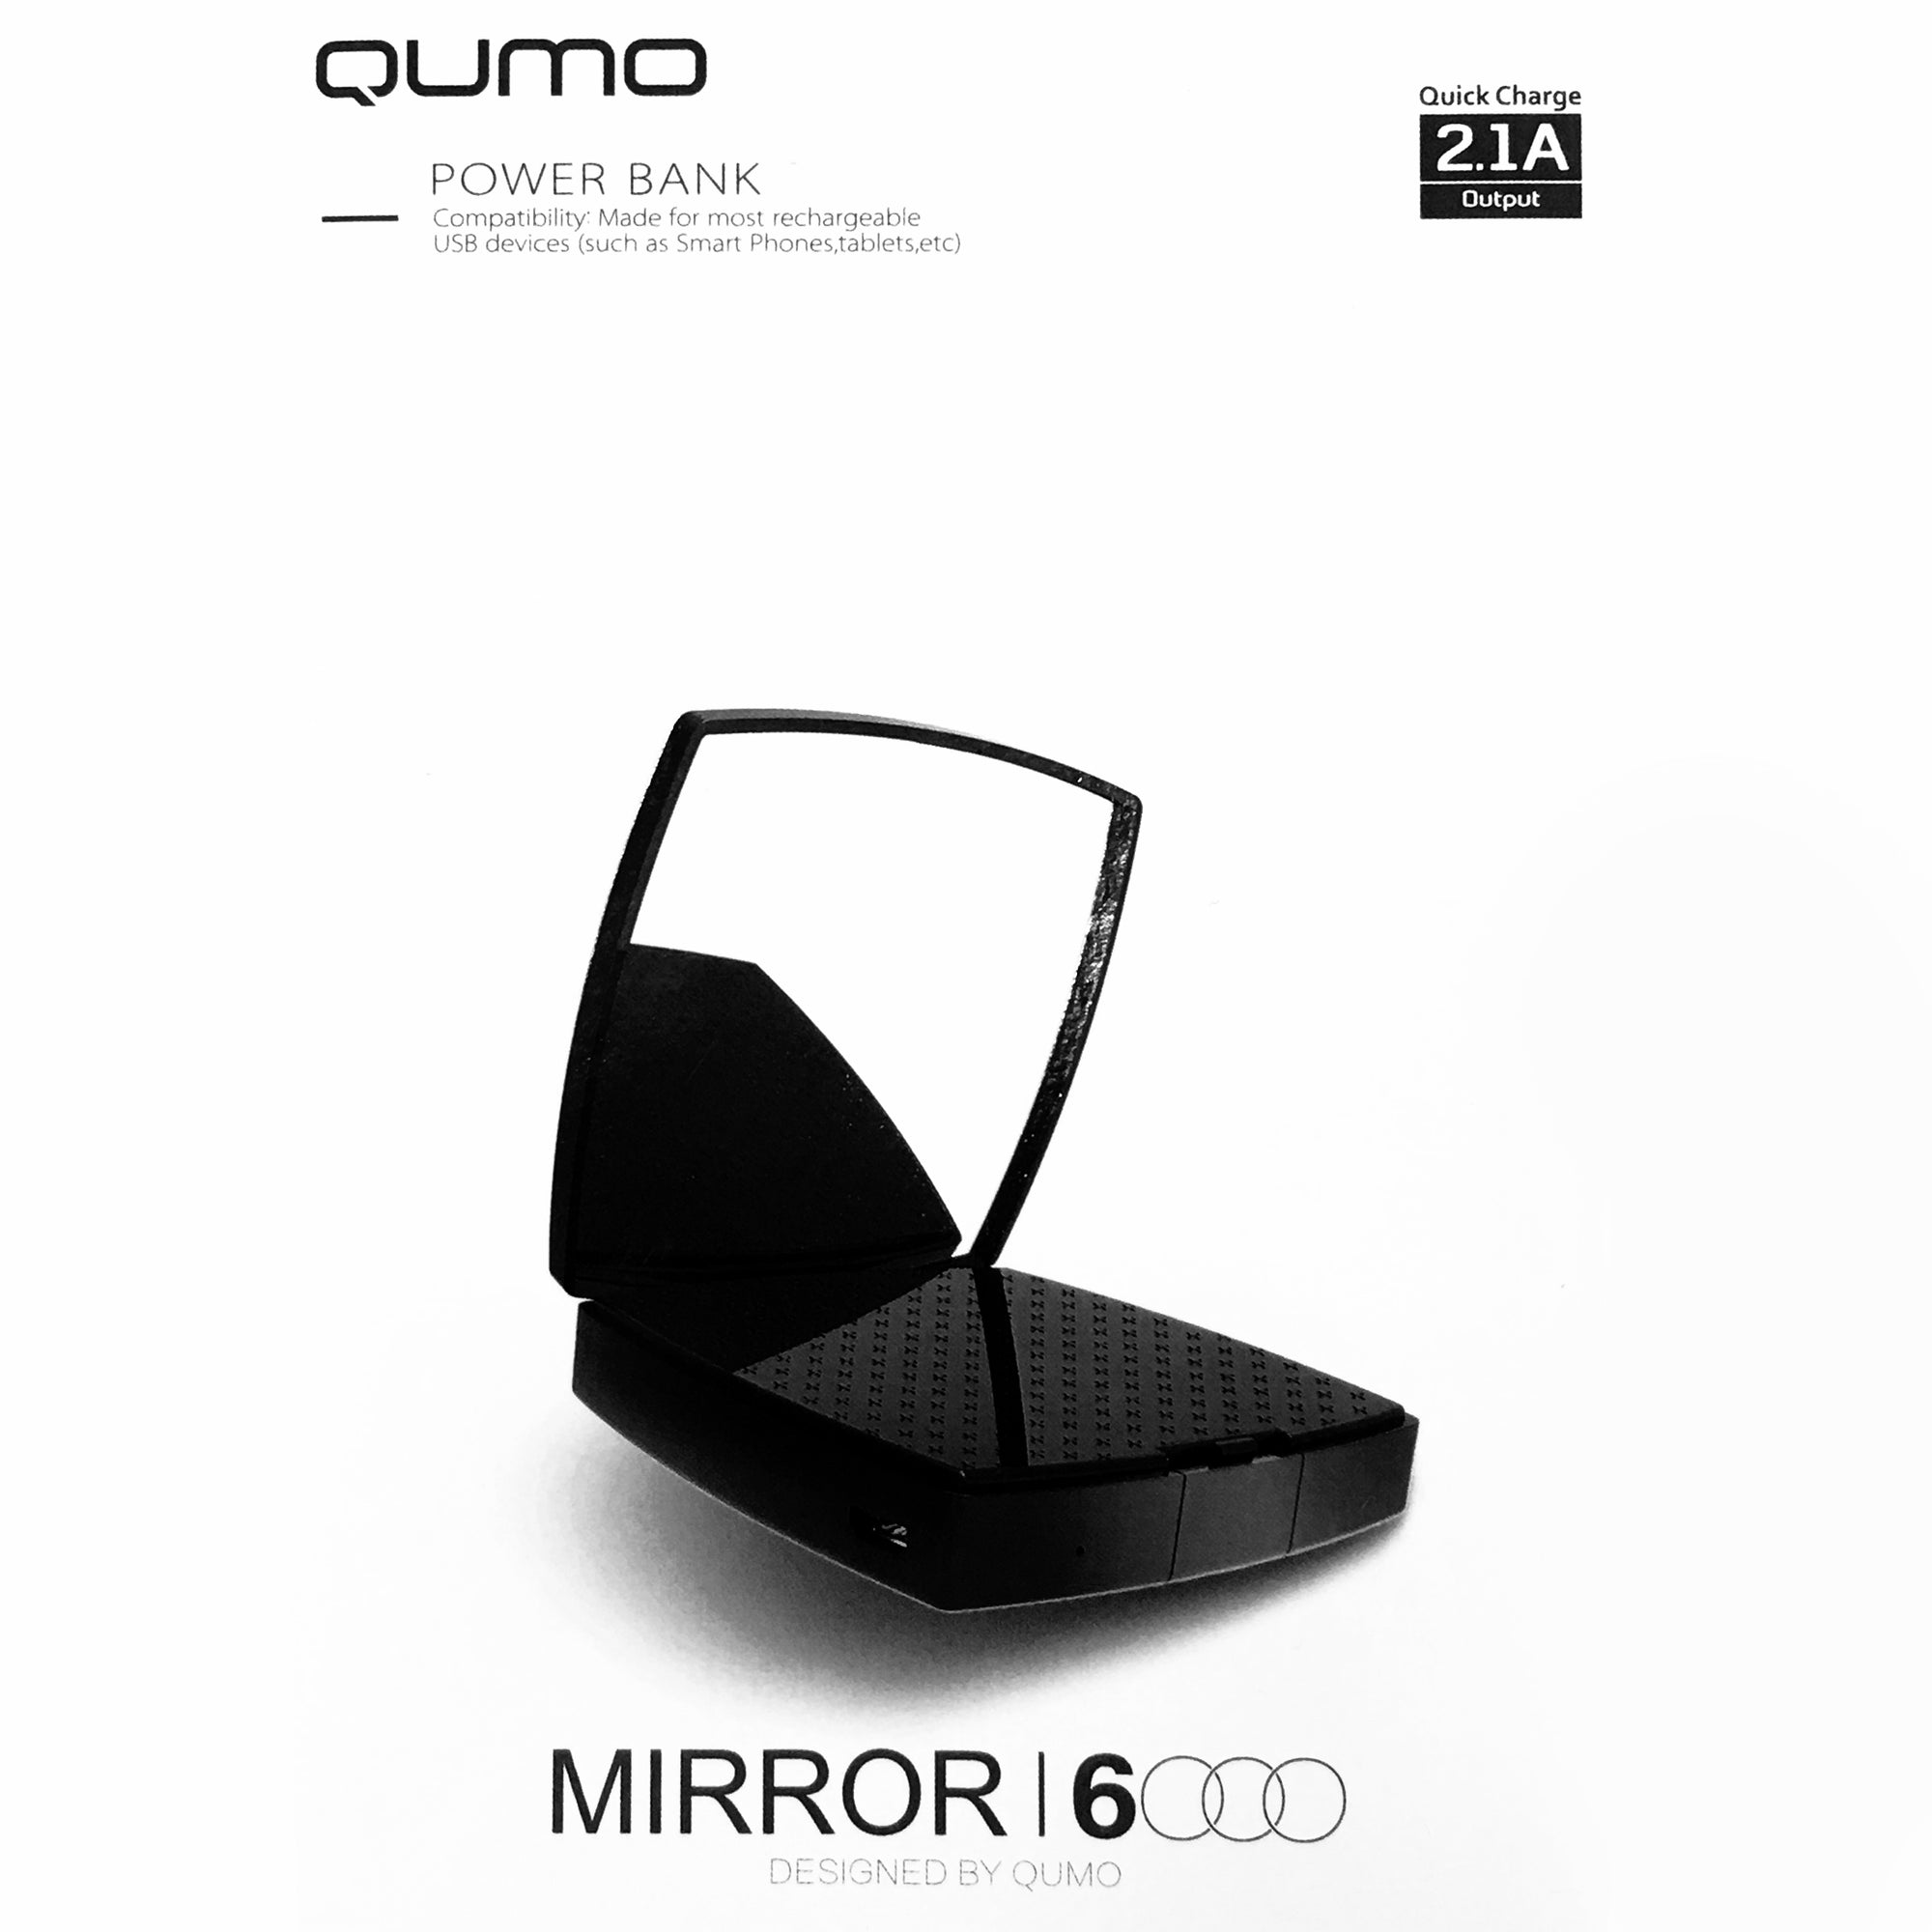 Qumo 6000mAh Power Bank + Mirror-NA9395